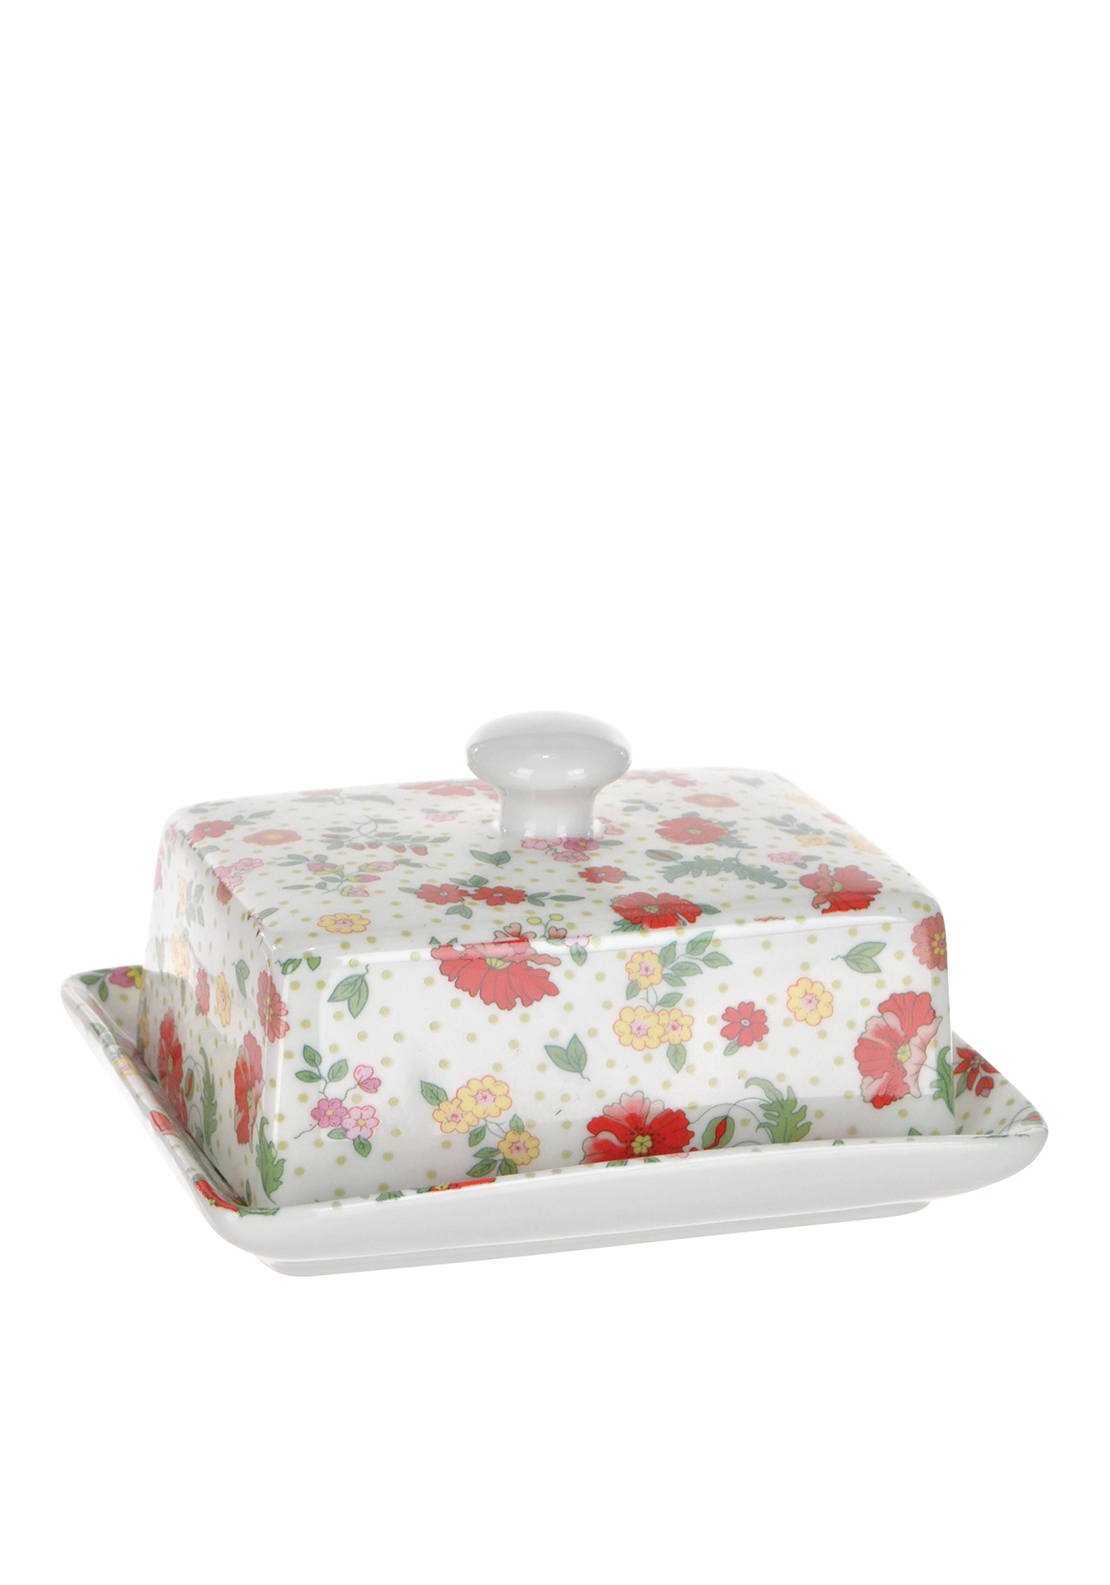 Shannon Bridge Ireland Miss Poppie Butter Dish, White/Multi floral